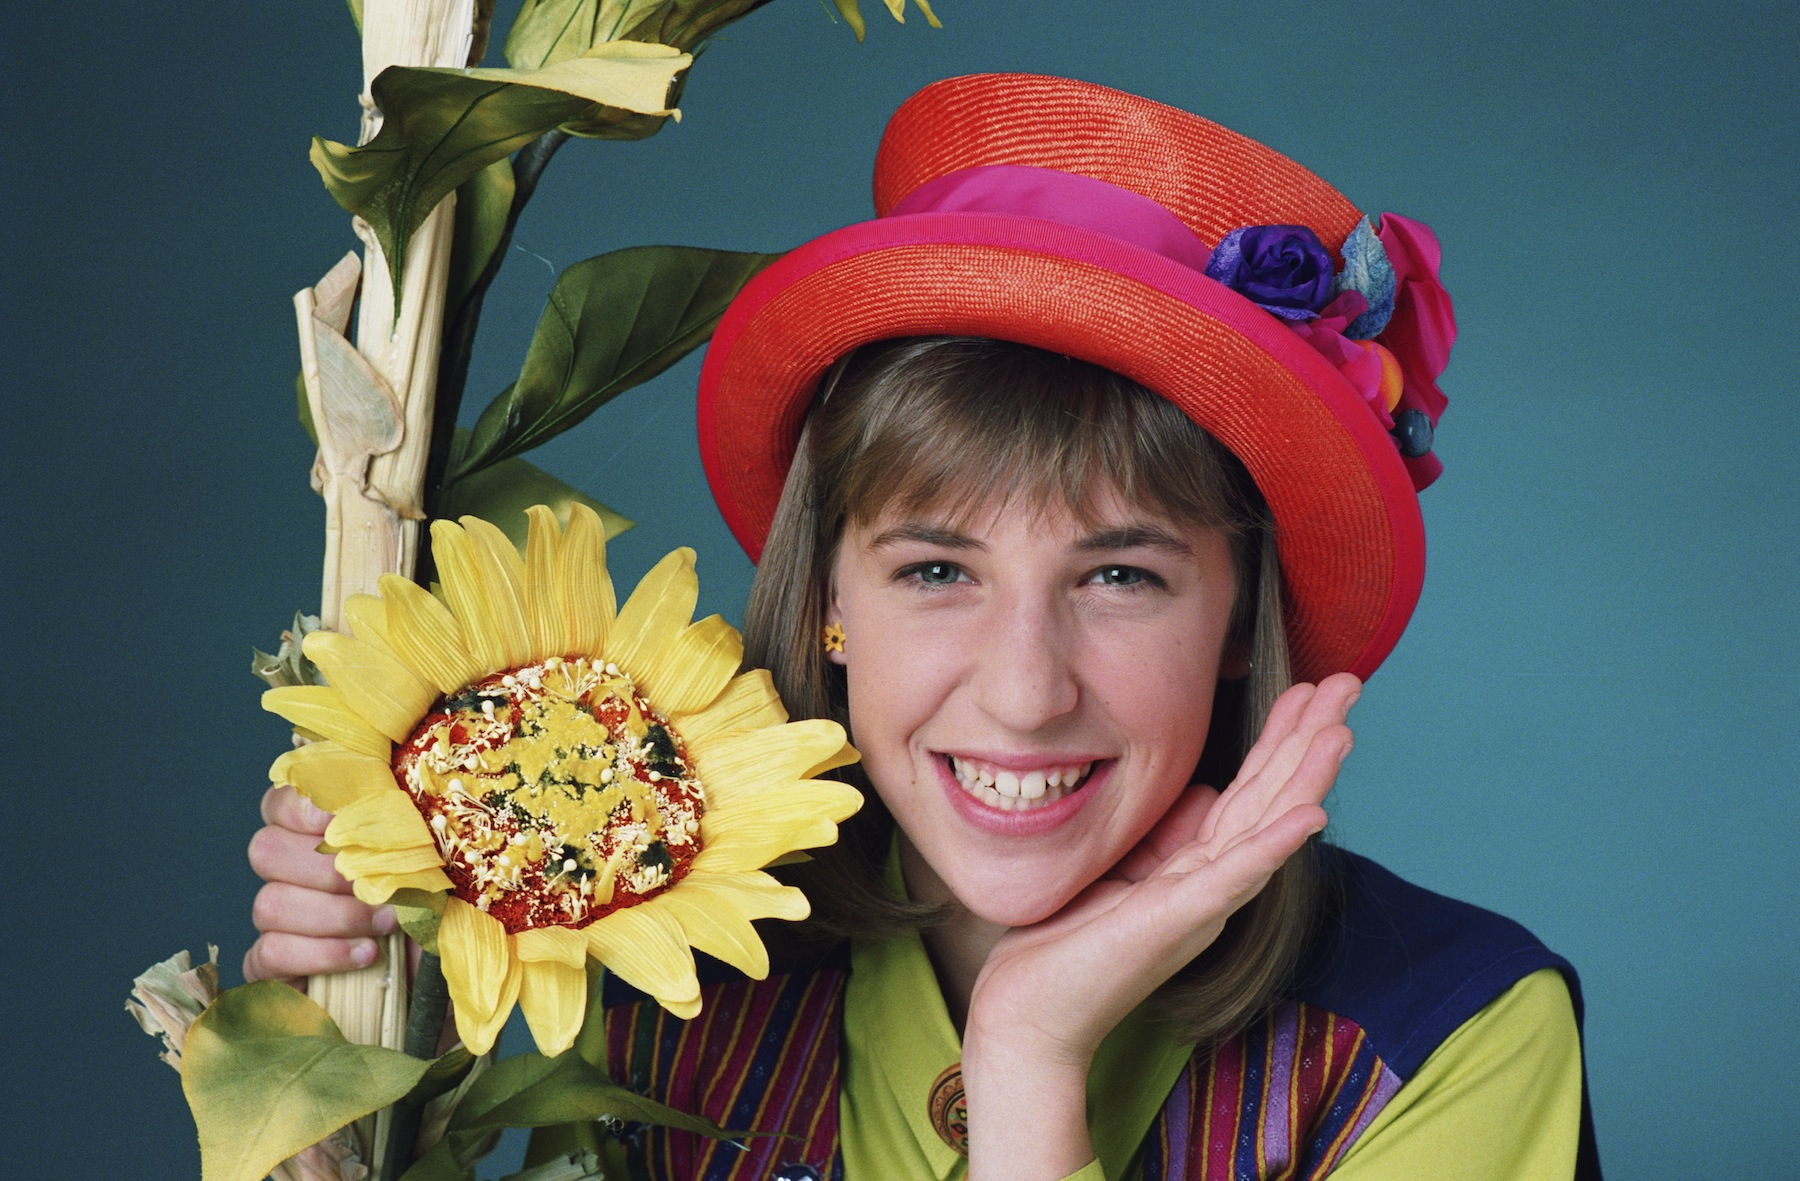 Mayim Bialik as Blossom Russo